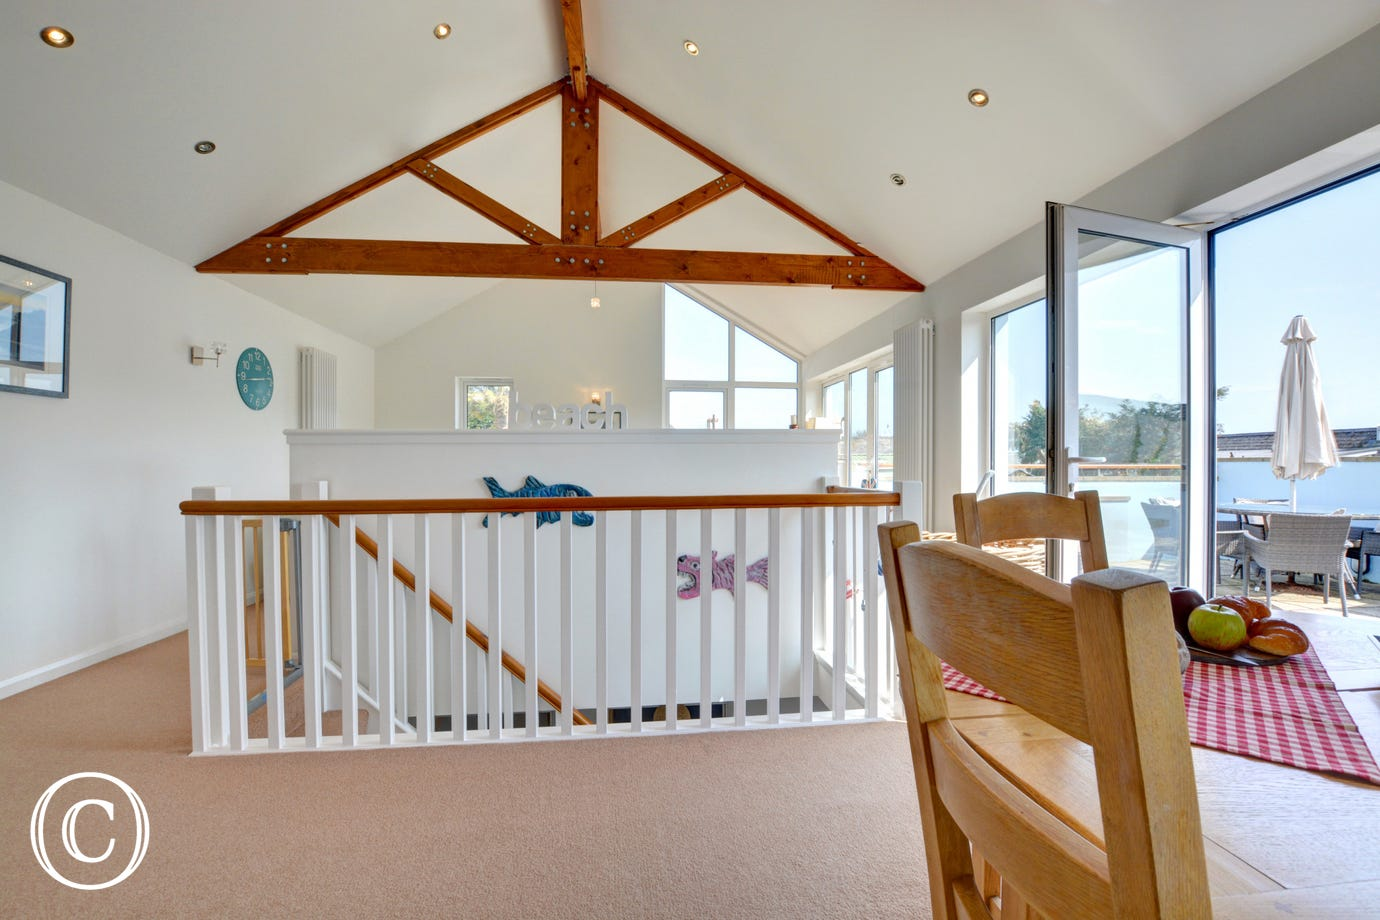 With apex wooden beams in the main living space adding character to this great holiday property